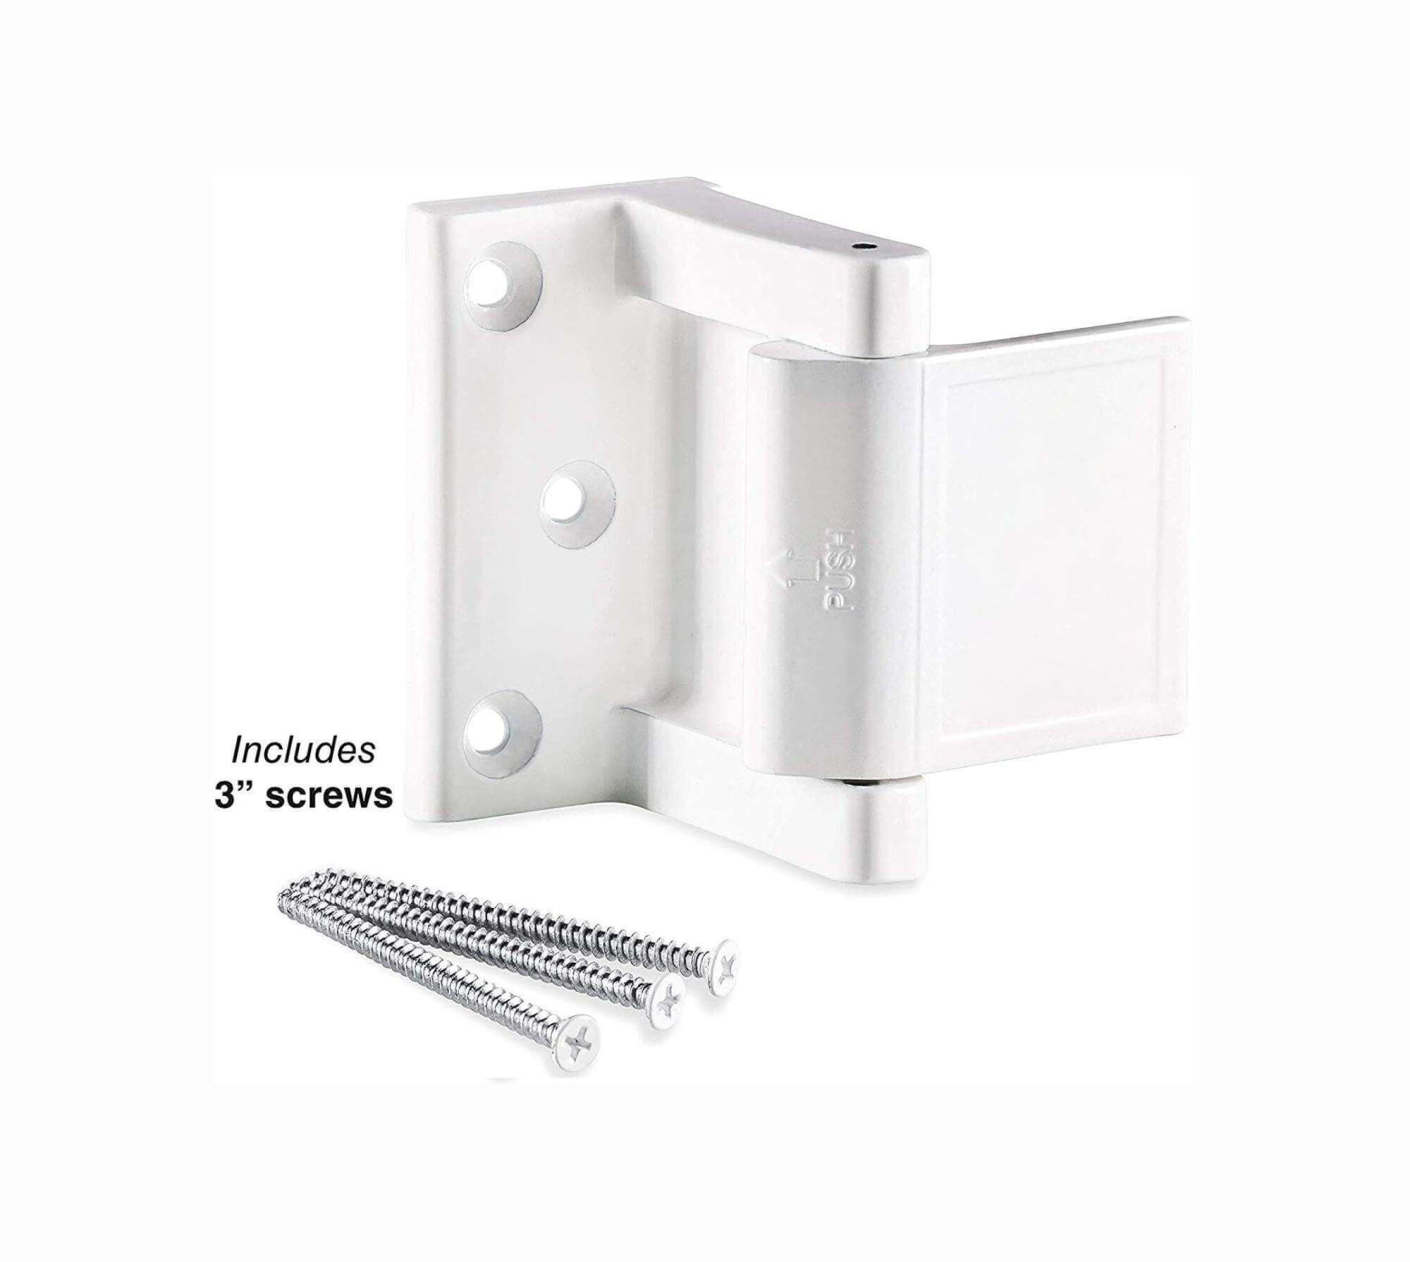 resize,m fill,w 1410,h 1262# - Custom Good Quality Hotel Door Security Latch For Hotel Door HL-126